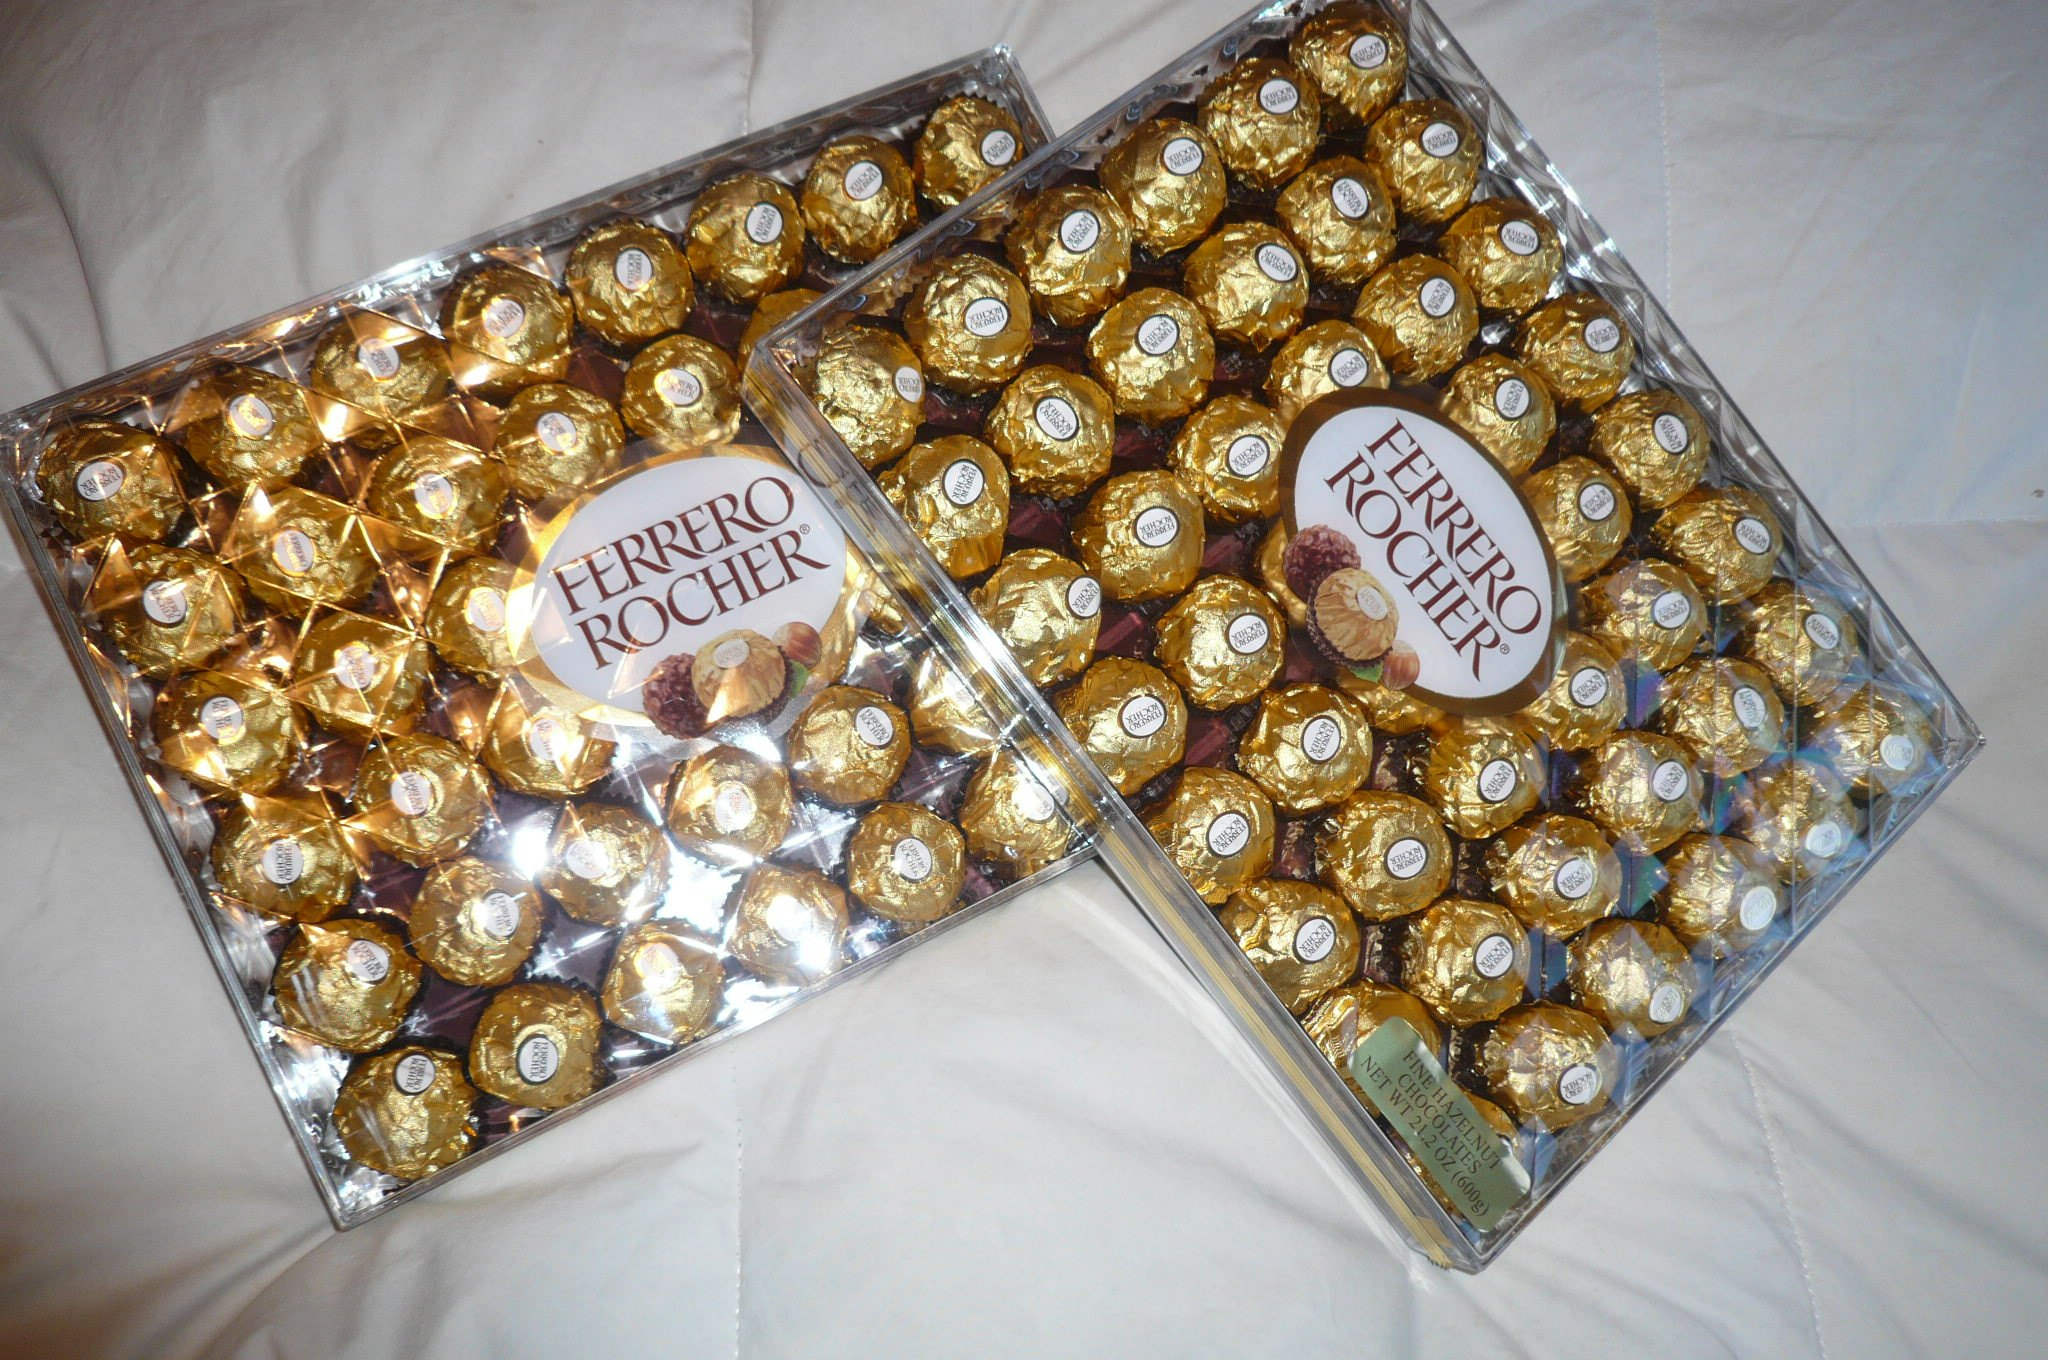 Ferrero Rocher Party Size Hazelnut Chocolate 21 oz 48 count (Pack of 2)